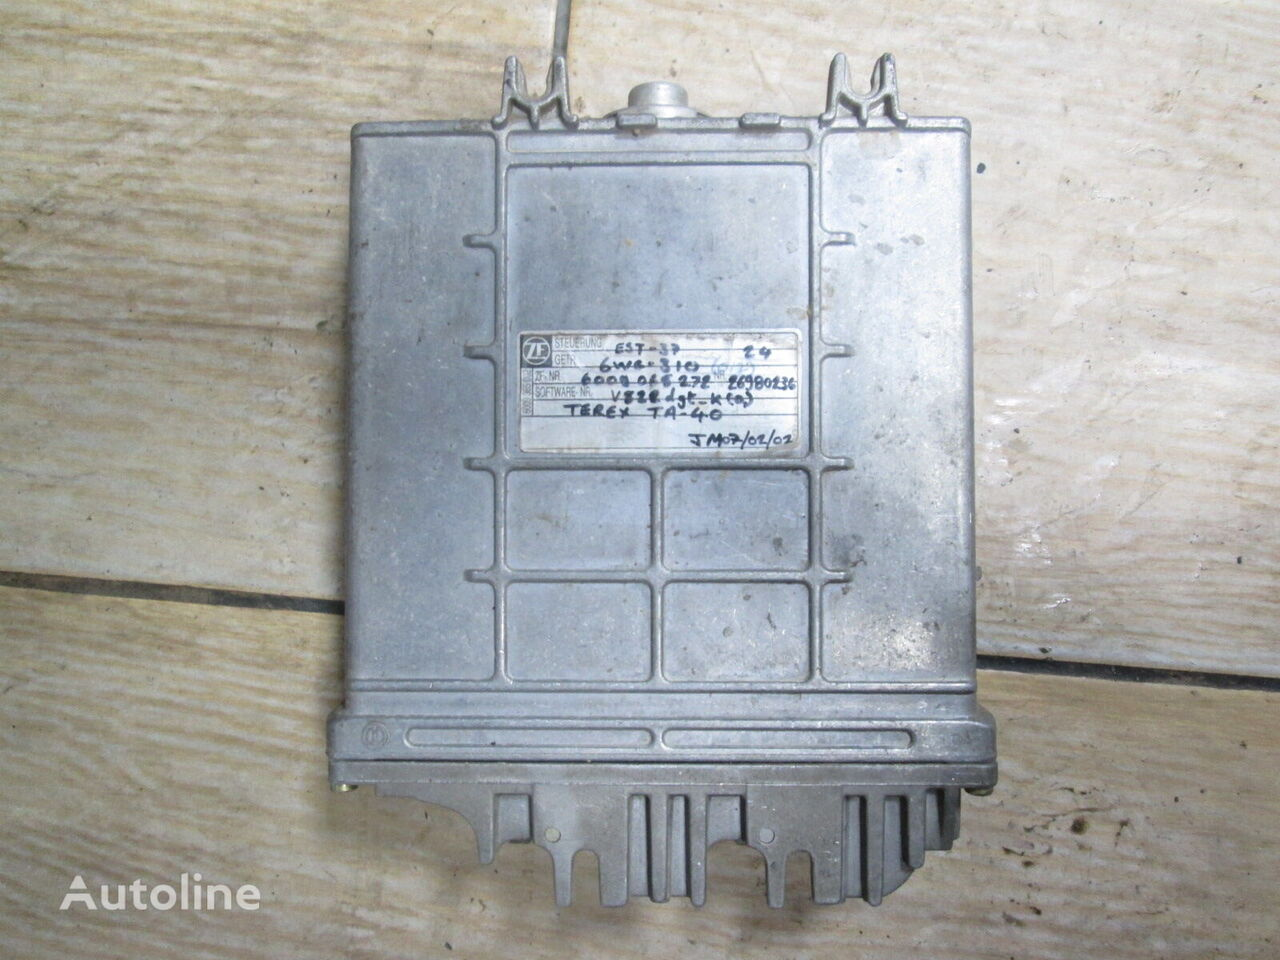 ZF for 6WG-310 (6009 065 272) control unit for TEREX TA 40 articulated dump truck